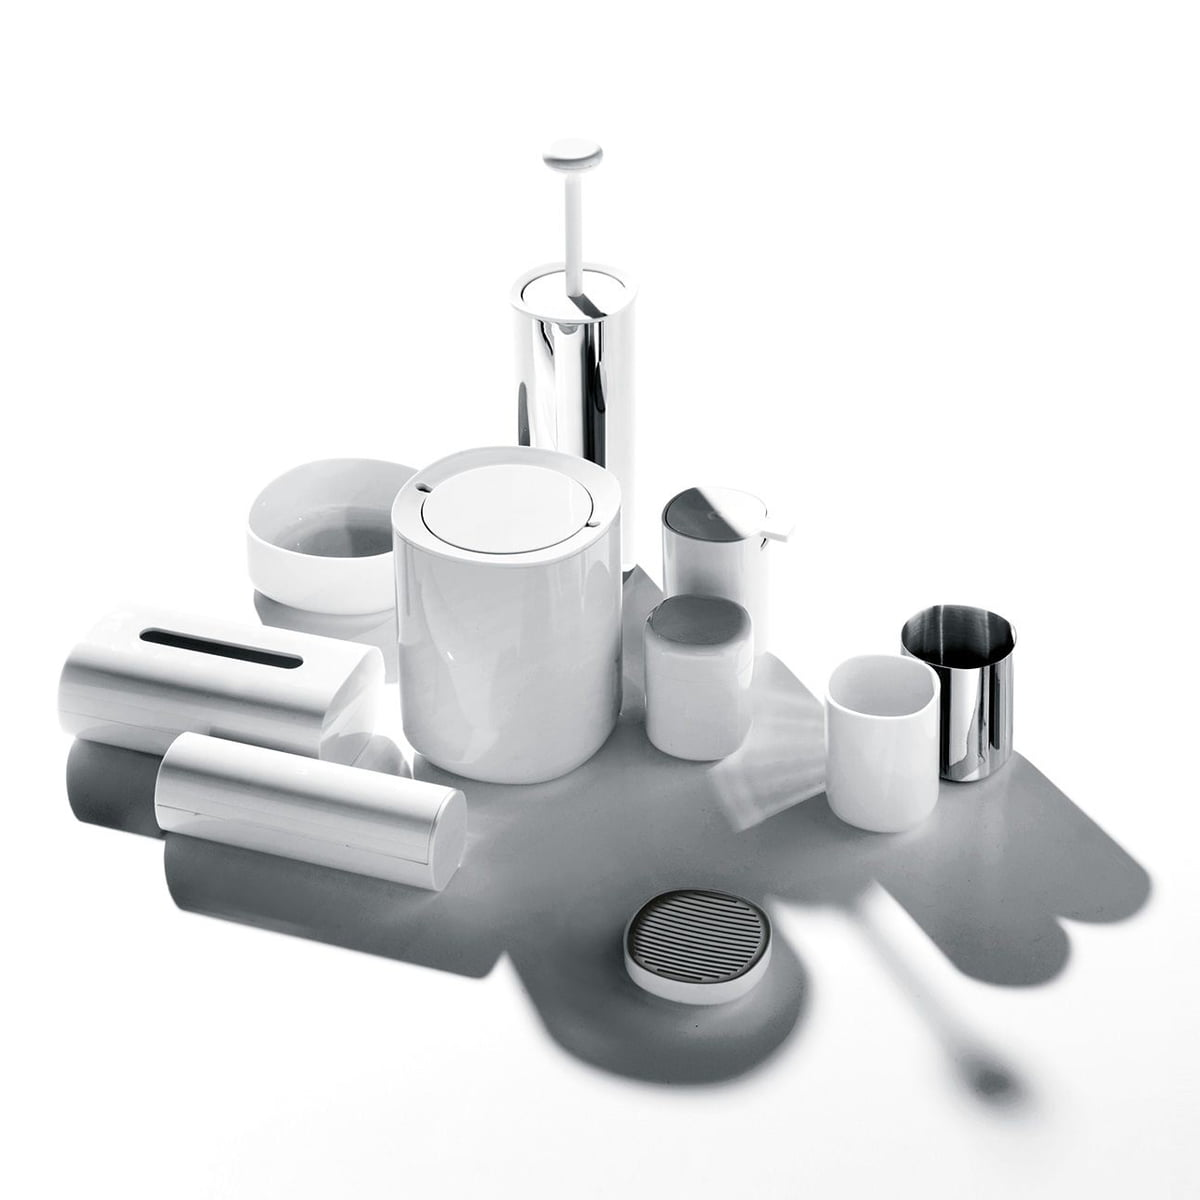 The Birillo Toilet Roll Holder PL18 by Alessi